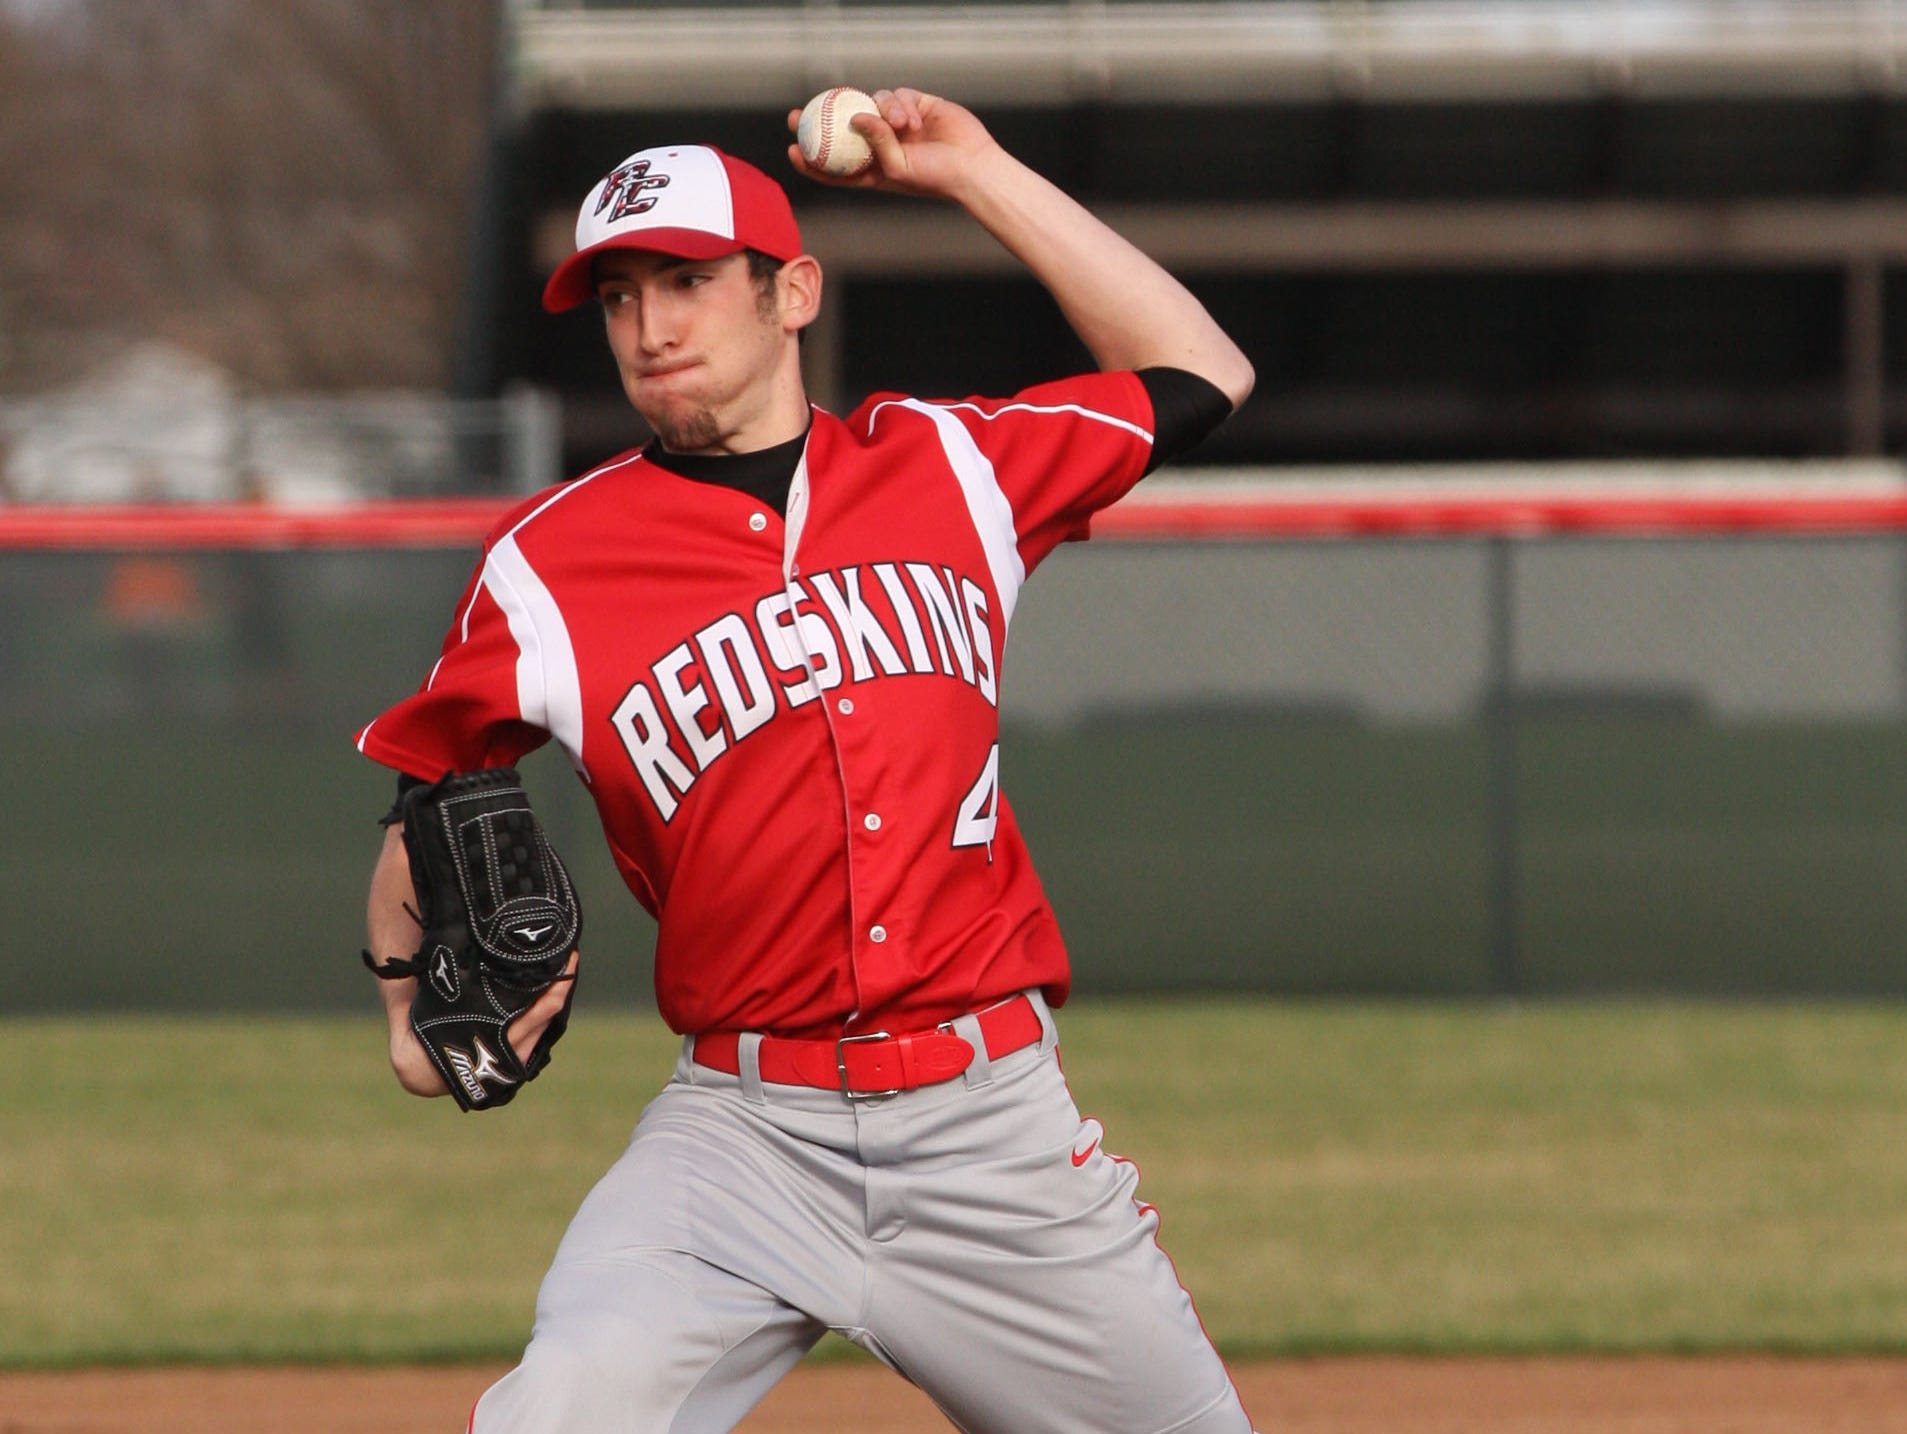 Port Clinton's Trevor Monk got the win in the Redskins' 2-1 victory Tuesday over Oak Harbor.